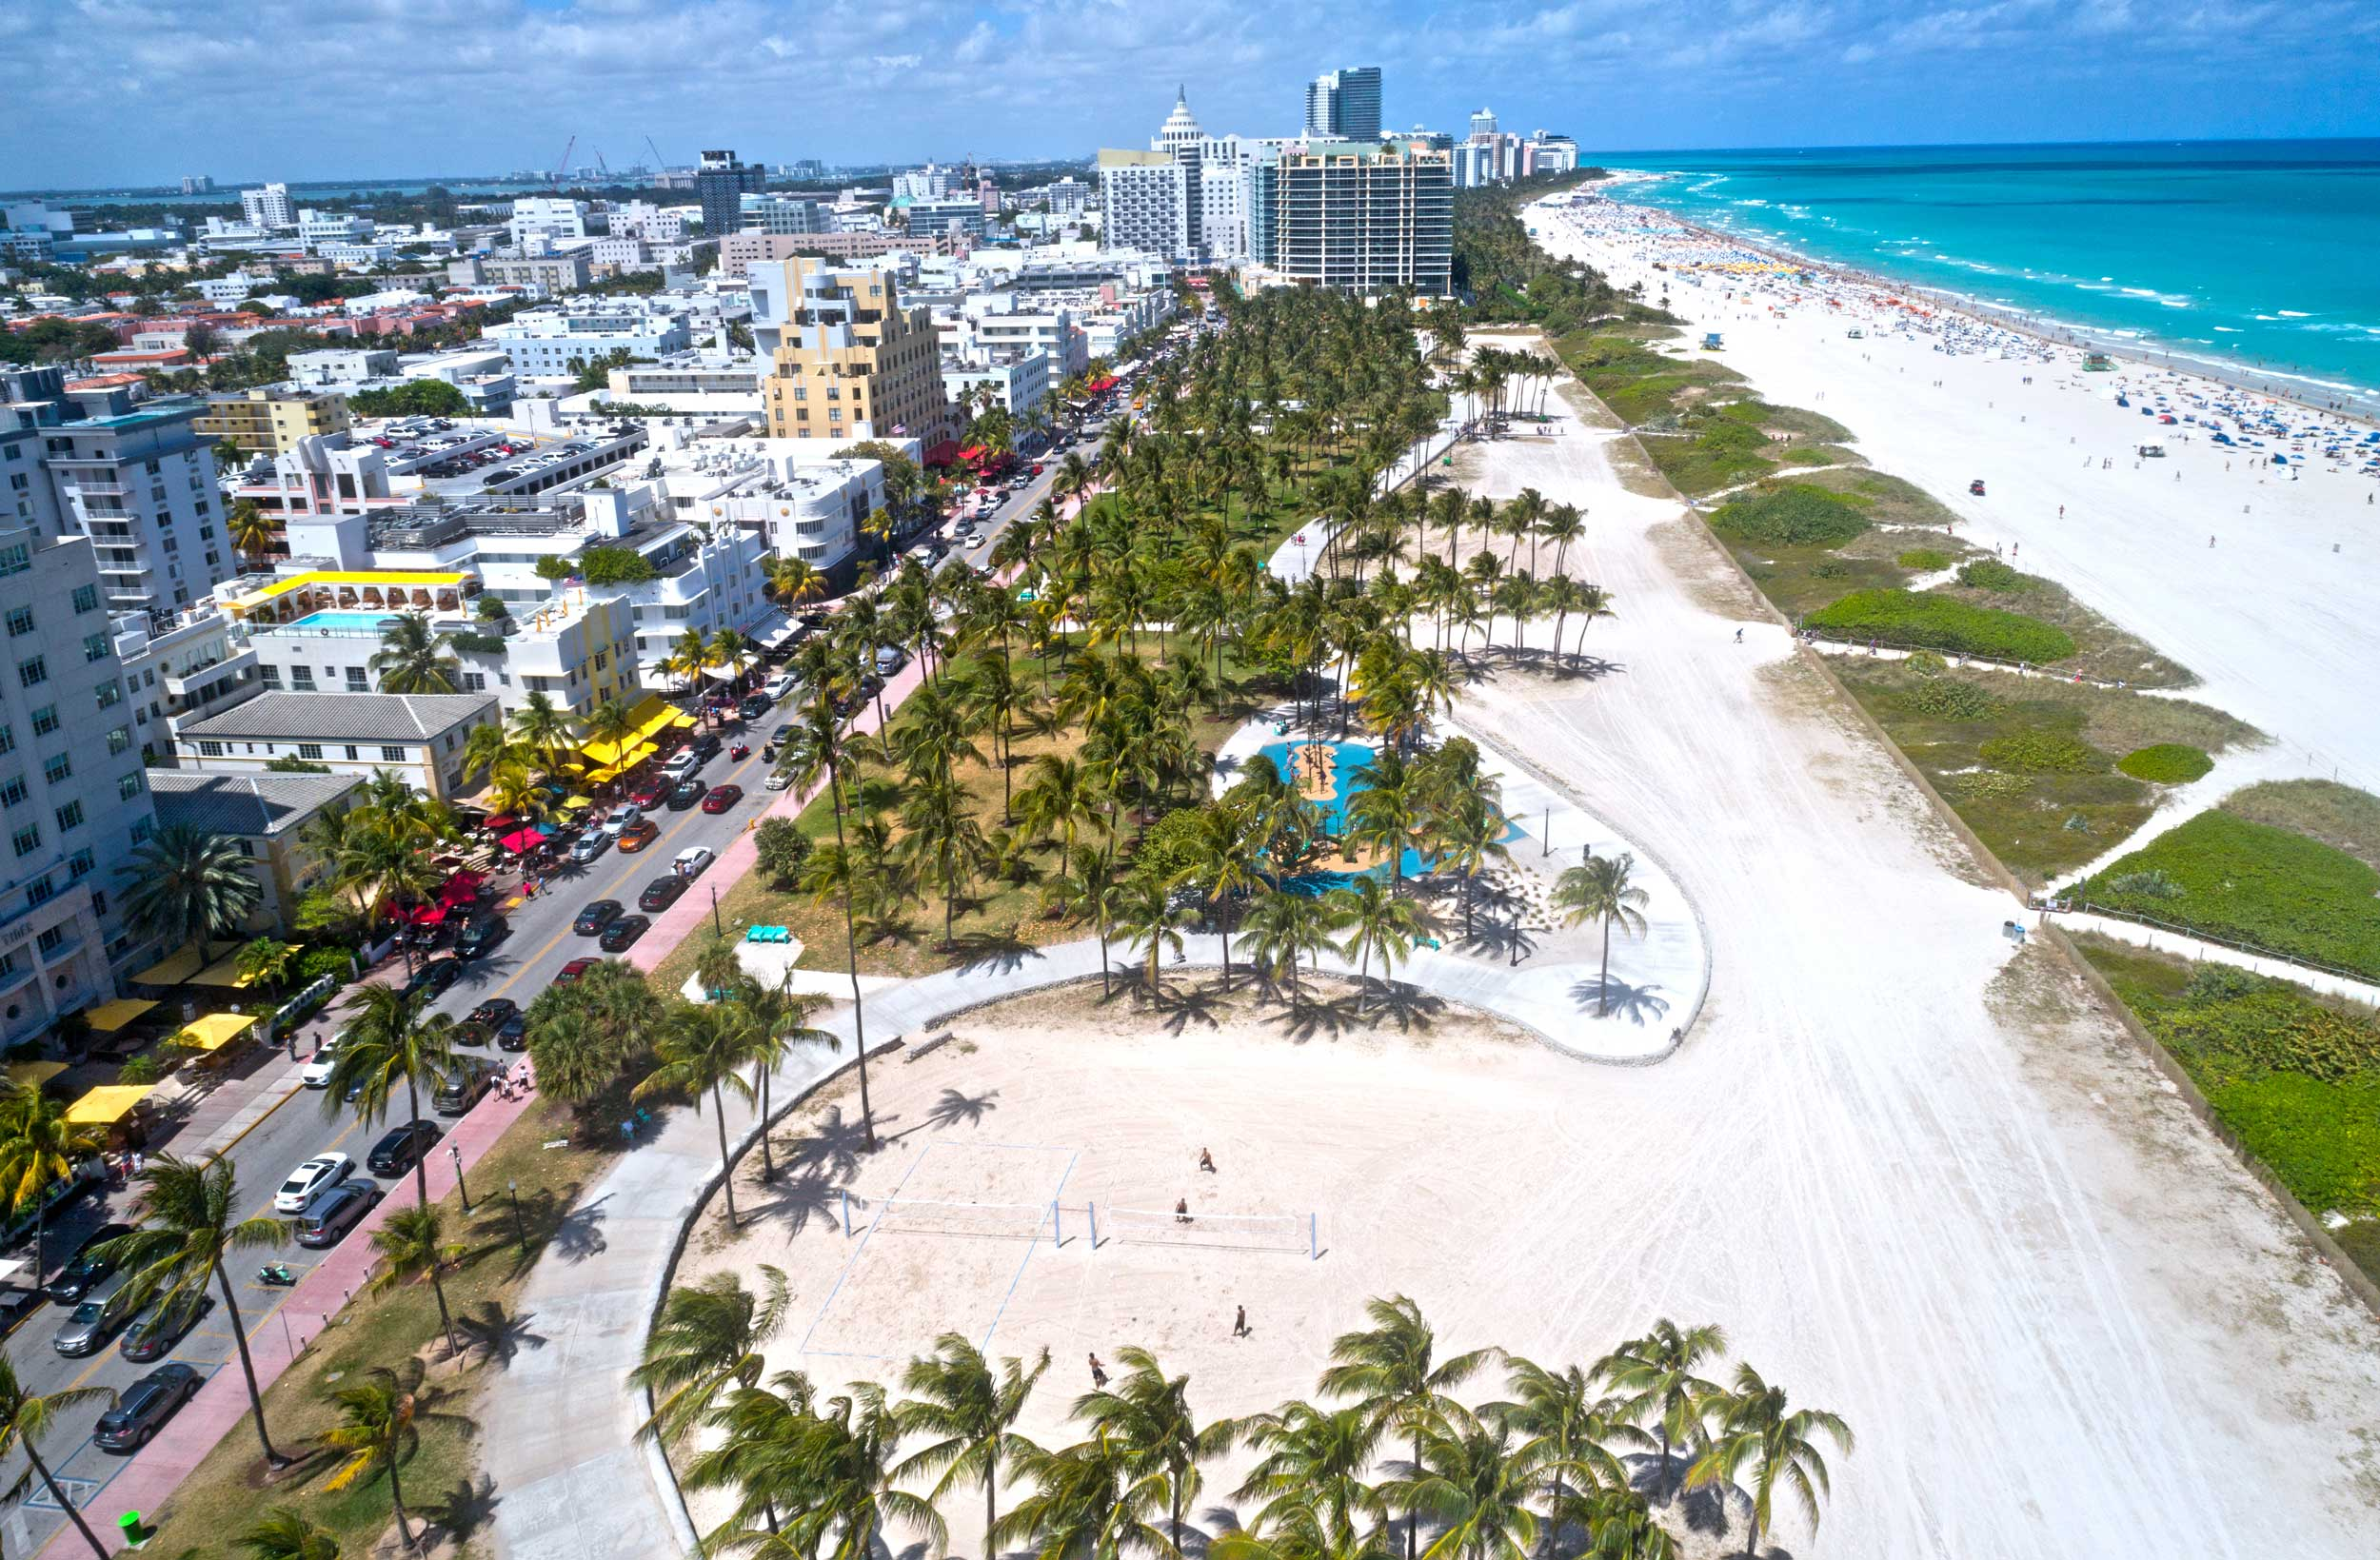 Aerial view of a boardwalk along the beach and town streets on the opposite side, Miami Beach